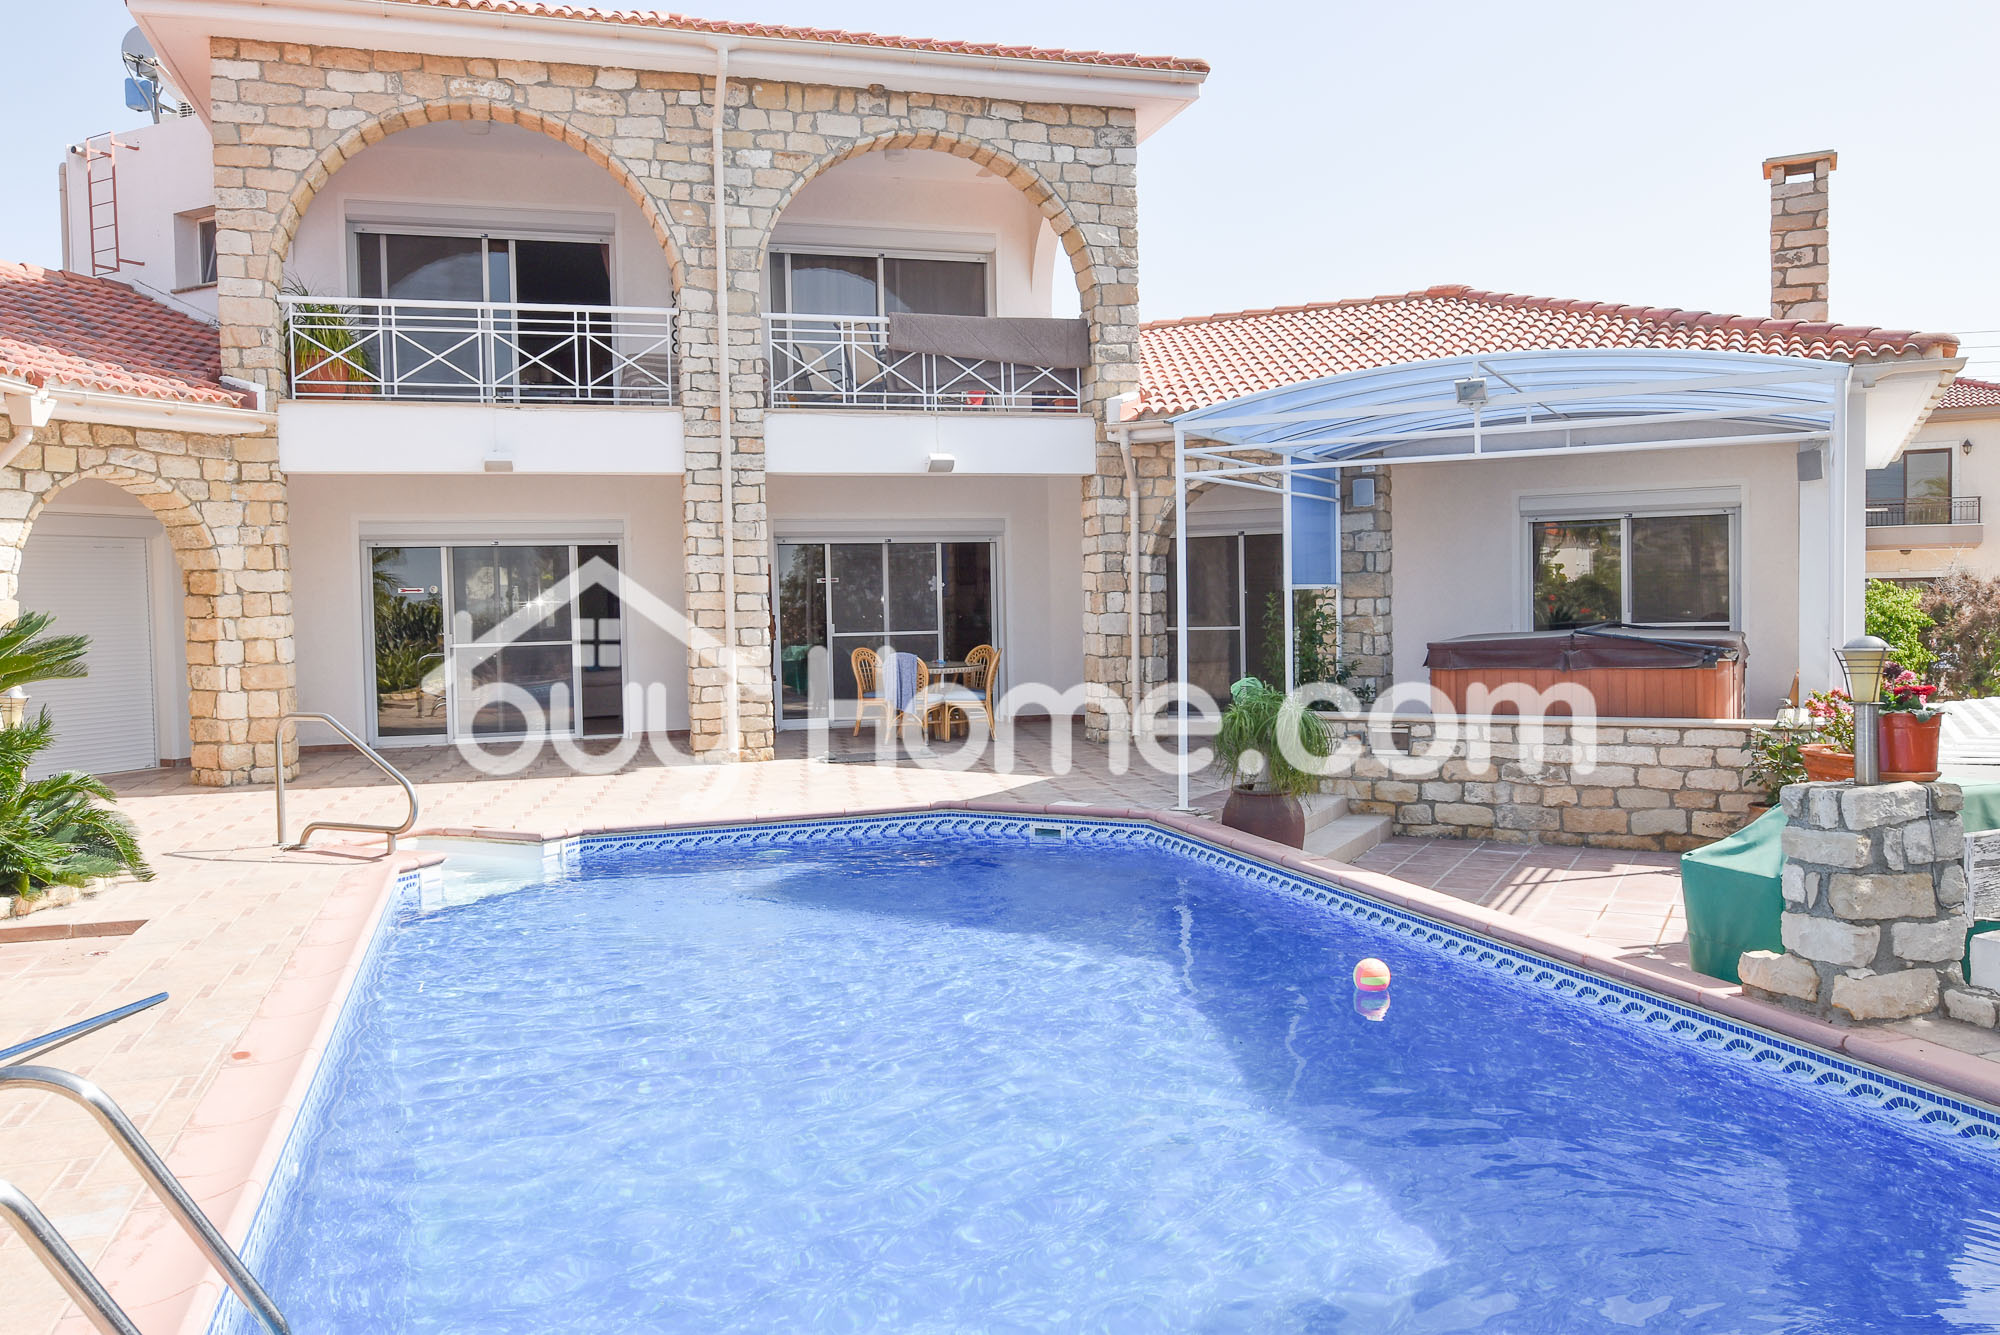 Very Nice 6 Bedroom Detached House | BuyHome